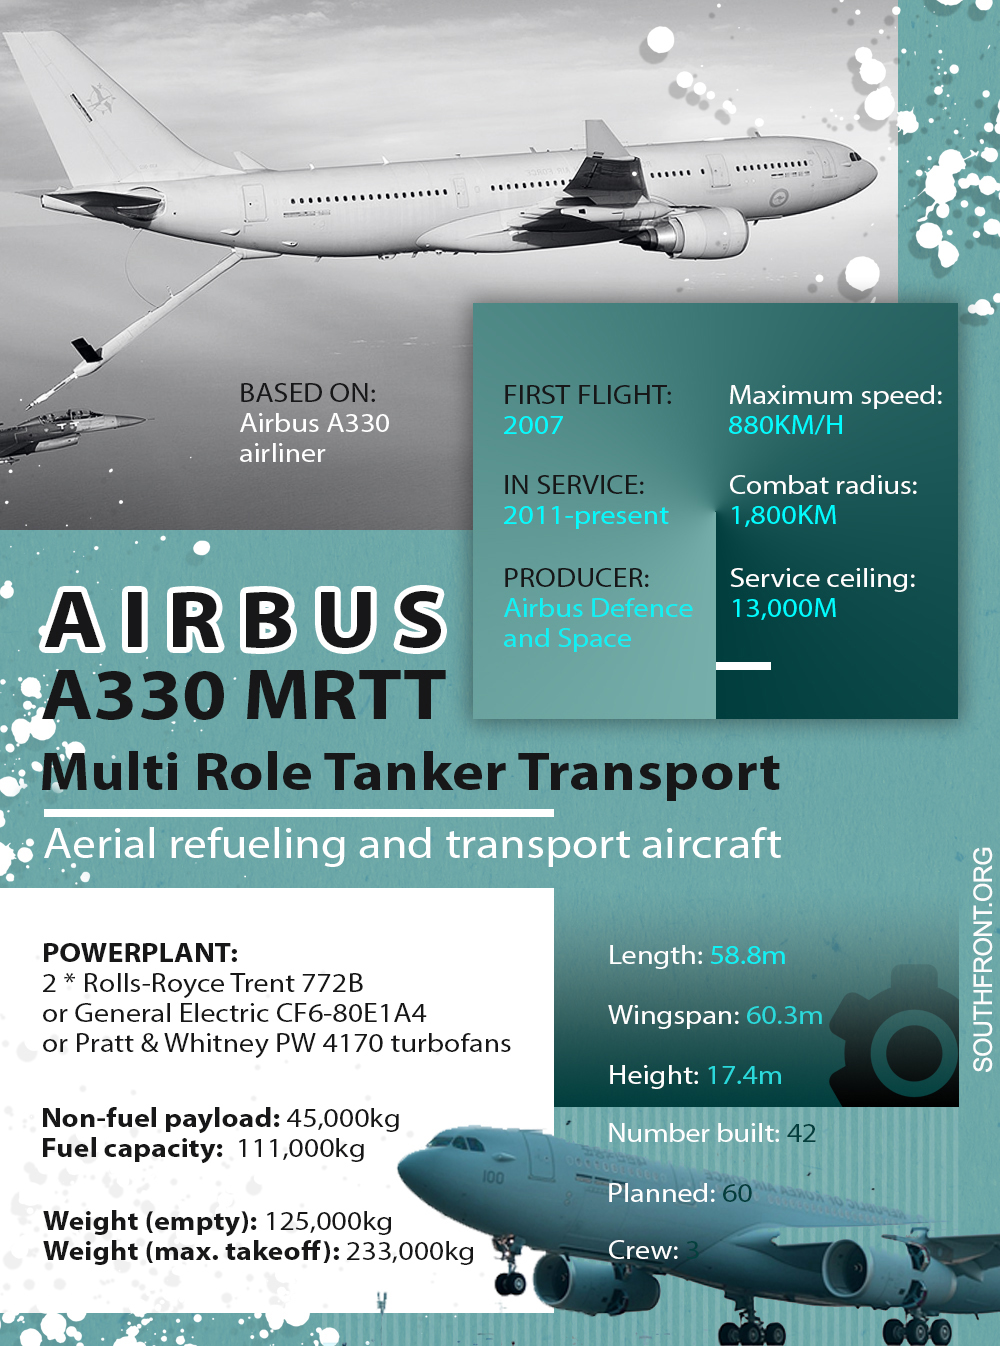 Airbus A330 Multi Role Tanker Transport (Infographics)